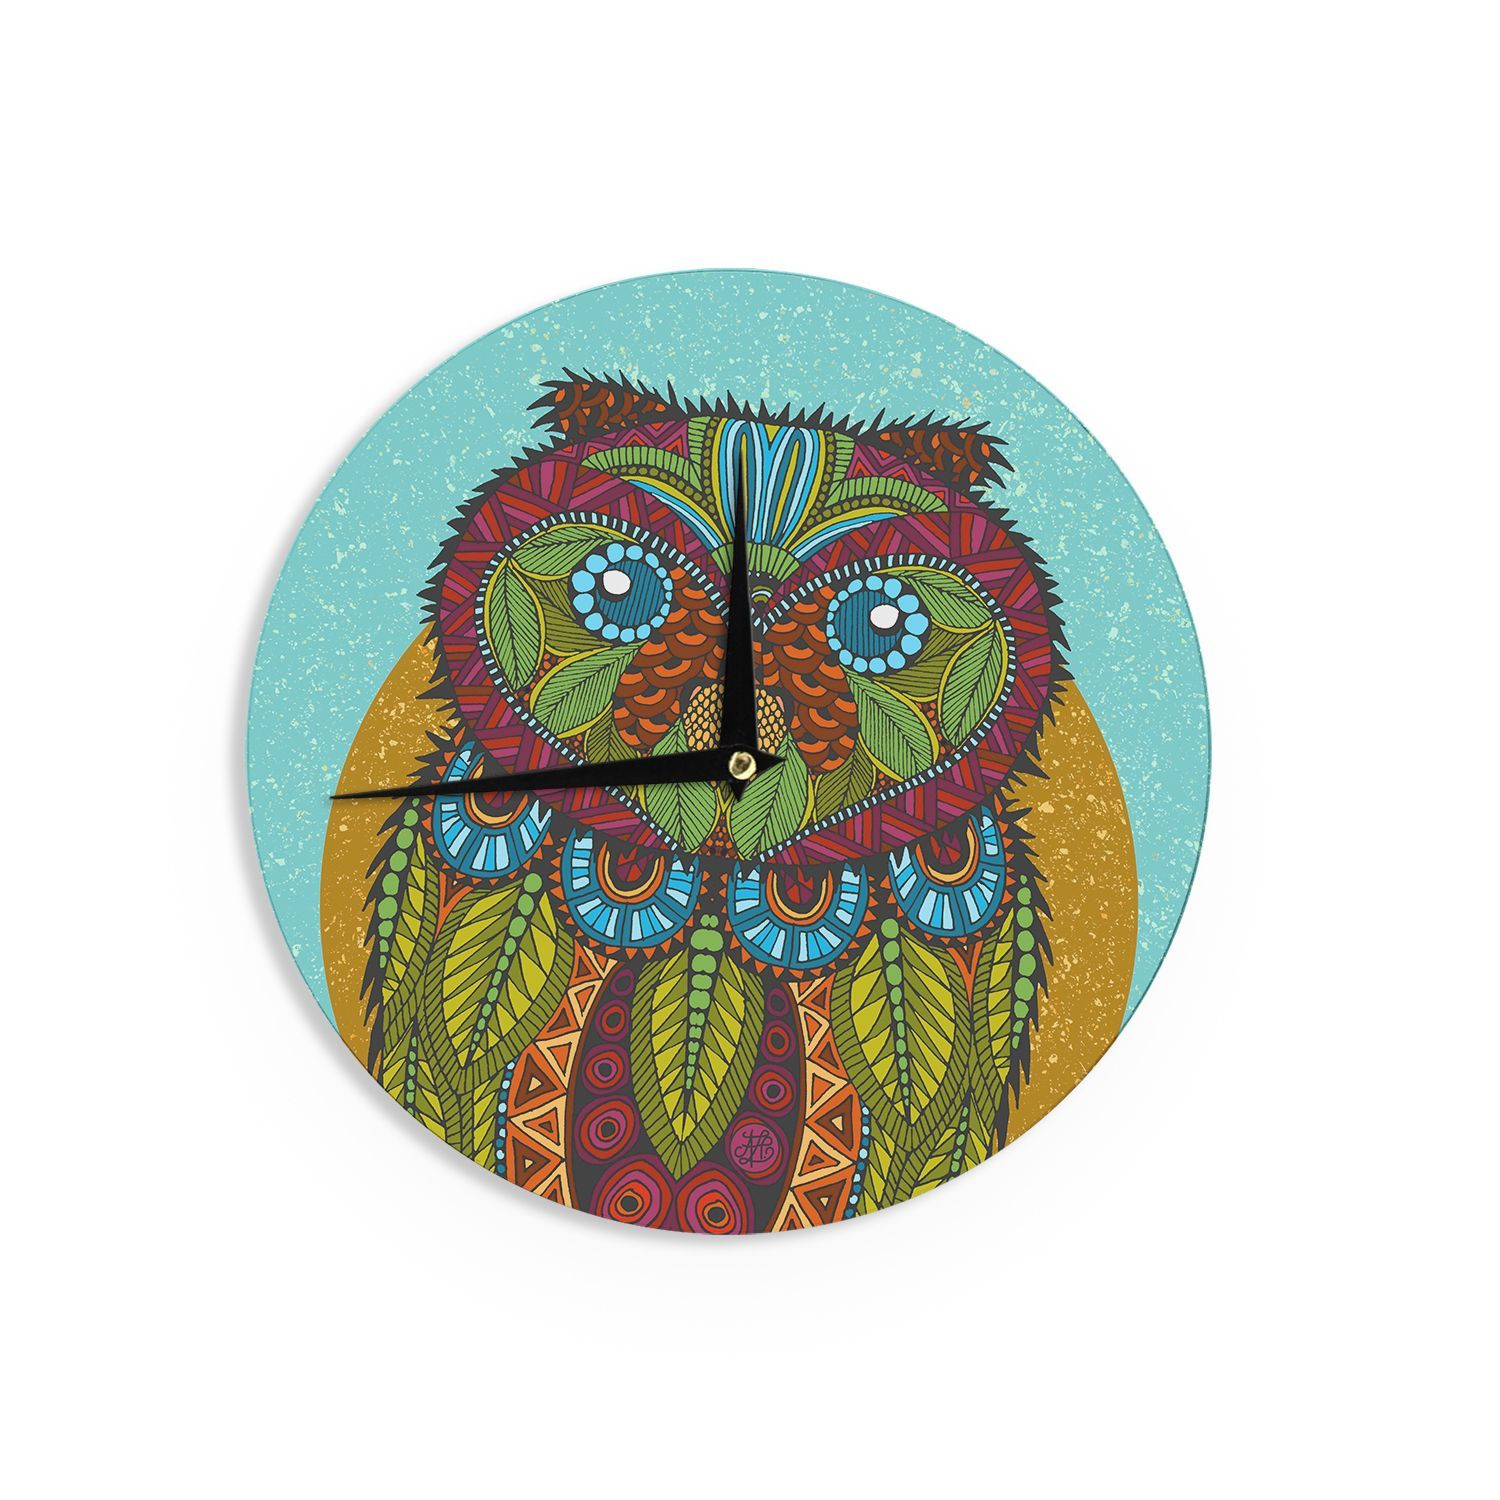 "Kess InHouse Art Love Passion Owl"" Teal Multicolor Wall Clock 12"" (Owl), Blue (Wood)"